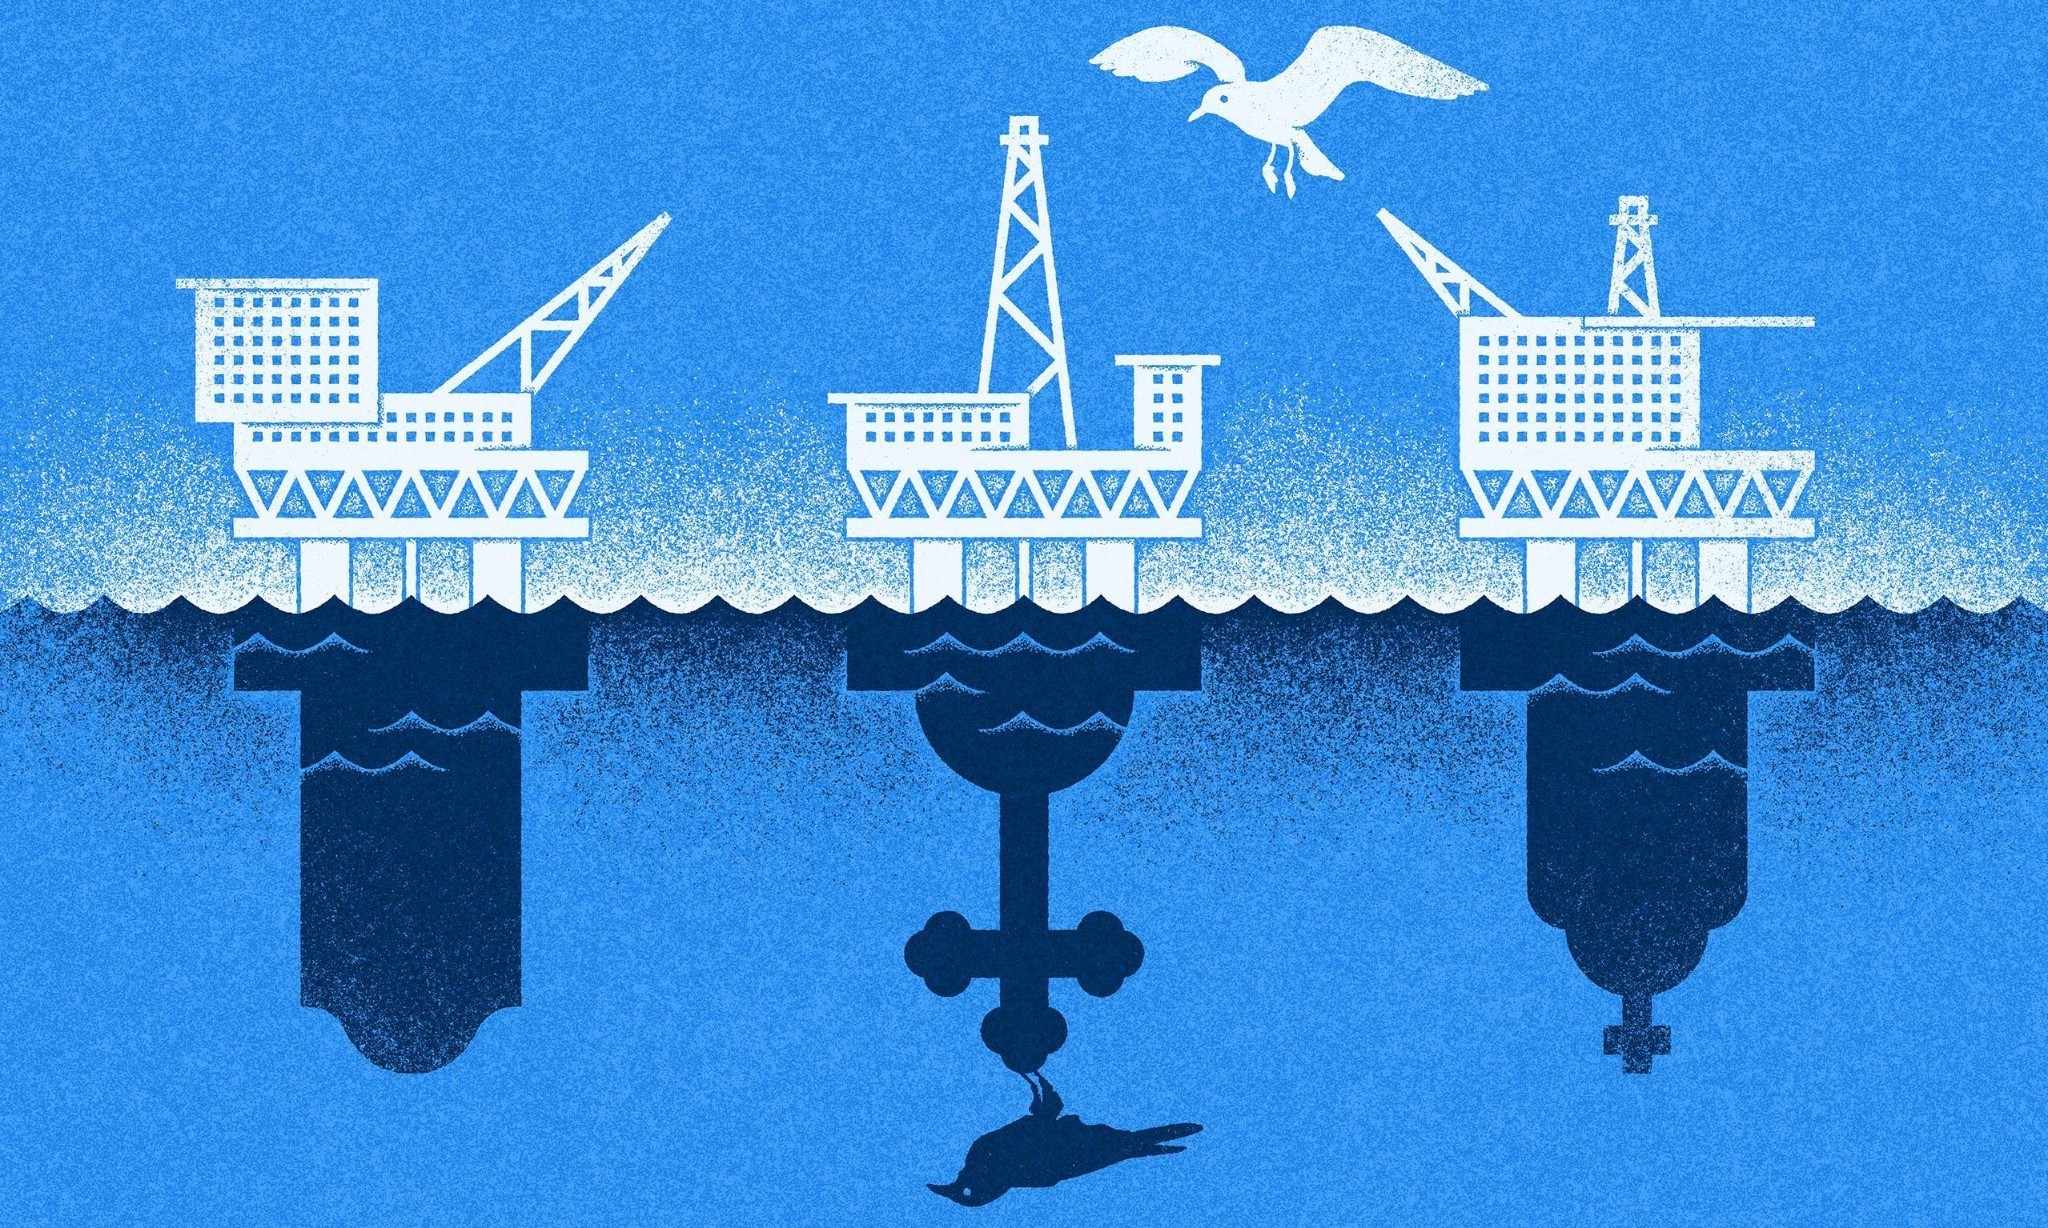 North Sea oil is in its death throes. But the industry has one last grand act left